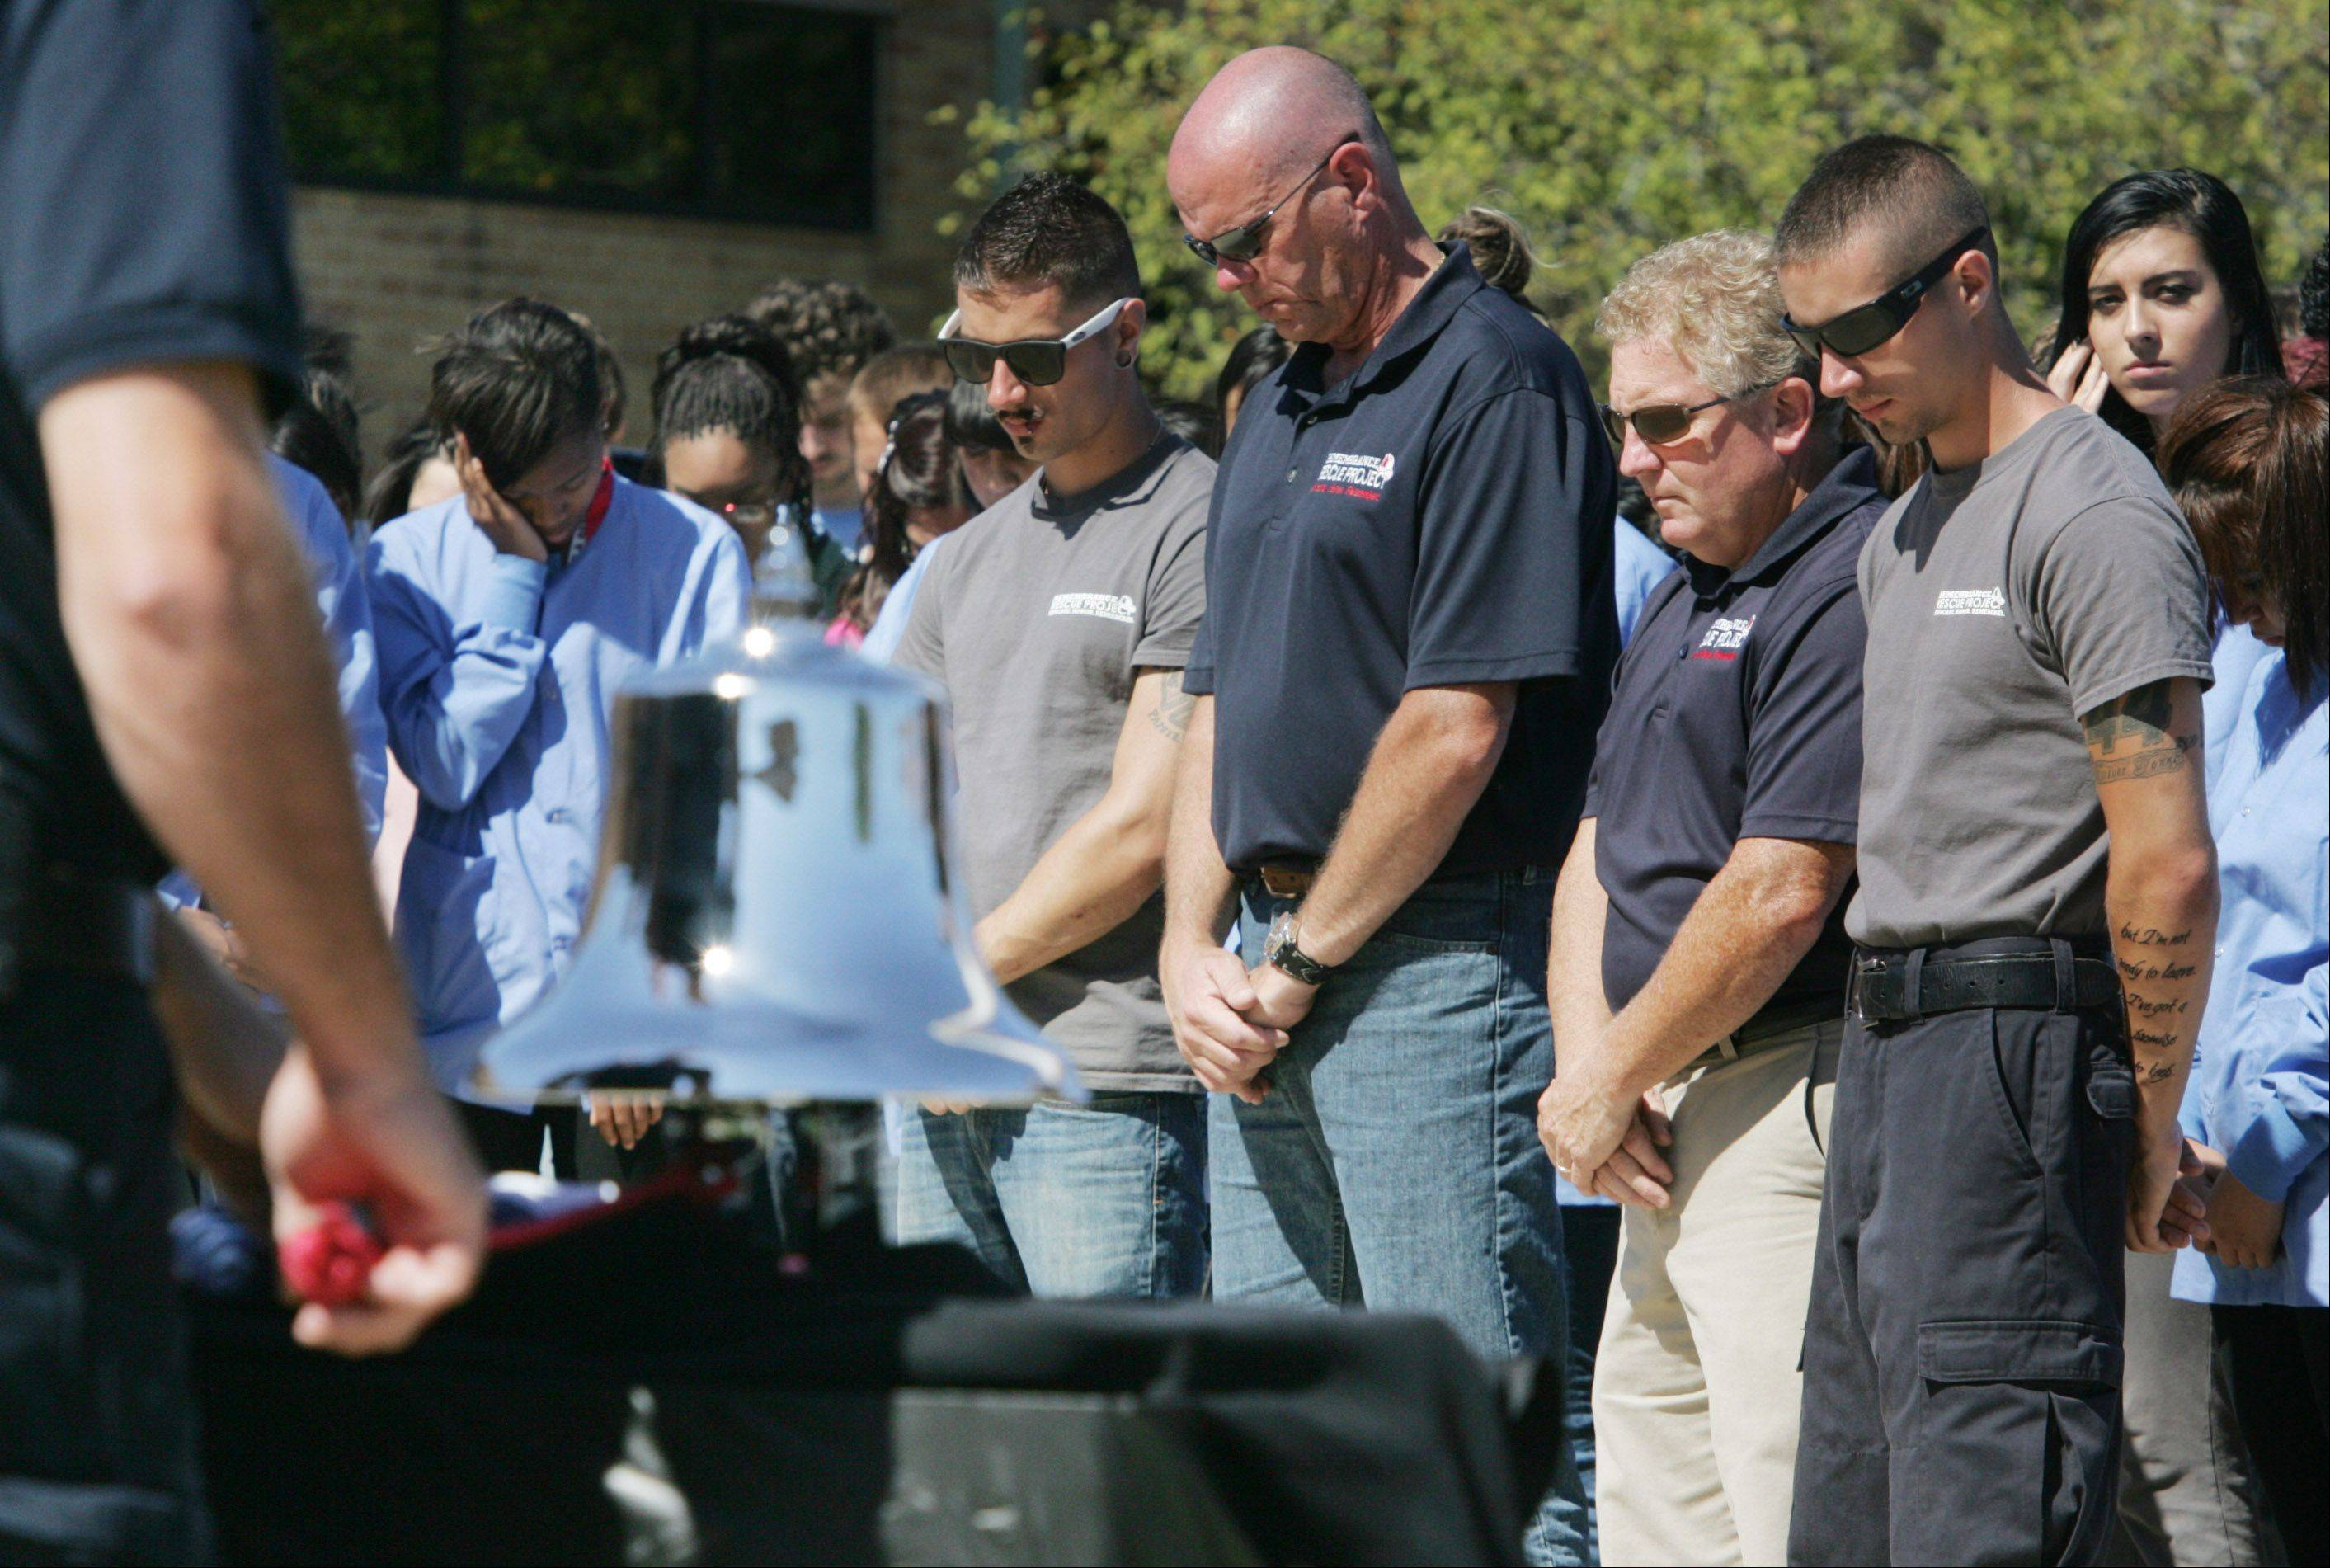 Remembrance Rescue Project members Corey Vaughn, left, Scott Vaughn, John Jacquette, and Brian Vaughn bow their heads as the fire bell is rung during a 9/11 ceremony at the Lake County High Schools Technology Campus in Grayslake. The group brought New York Fire Department Rescue 5 engine to show the students.    The fire truck was on the scene in New York on Sept. 11, 2001, when the two World Trade Center towers collapsed.